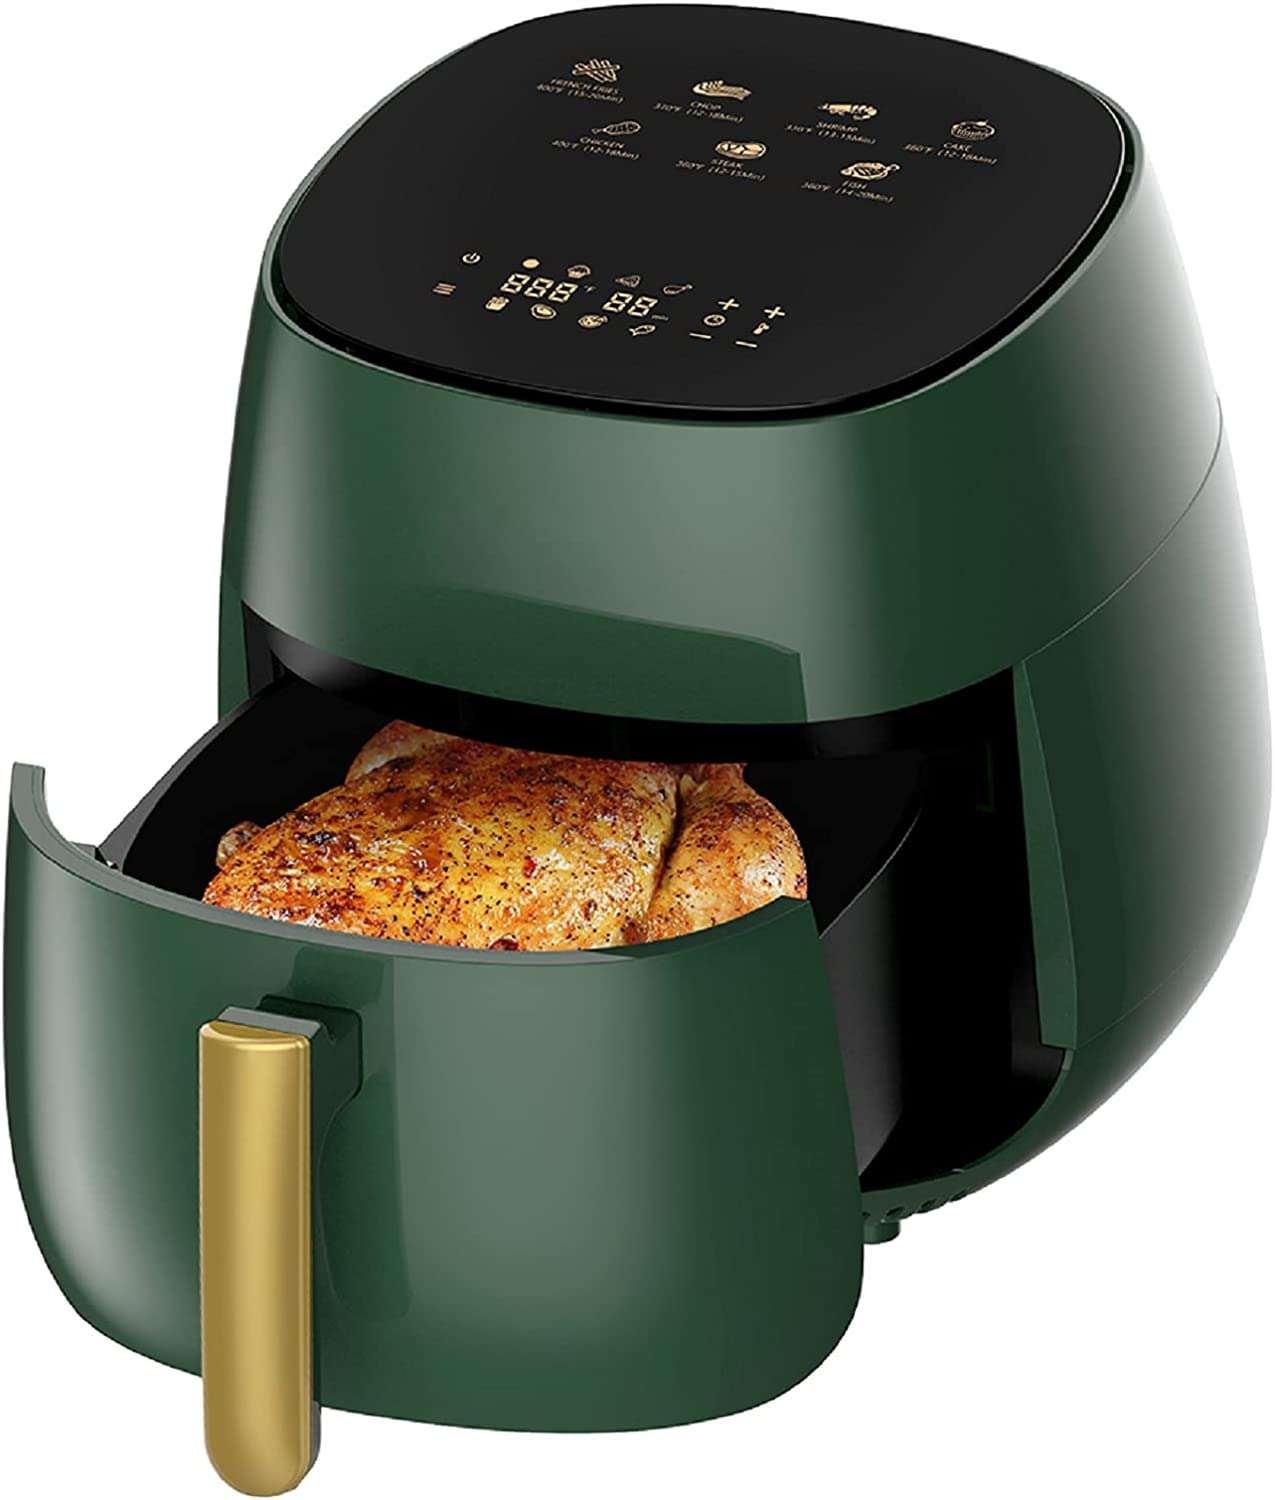 Air Fryer, 4.8QT Airfryers 7-in-1 Hot Oven Oilless, 1400W Digital Touchscreen Air Frier Cookers with Nonstick Basket & Recipe Book